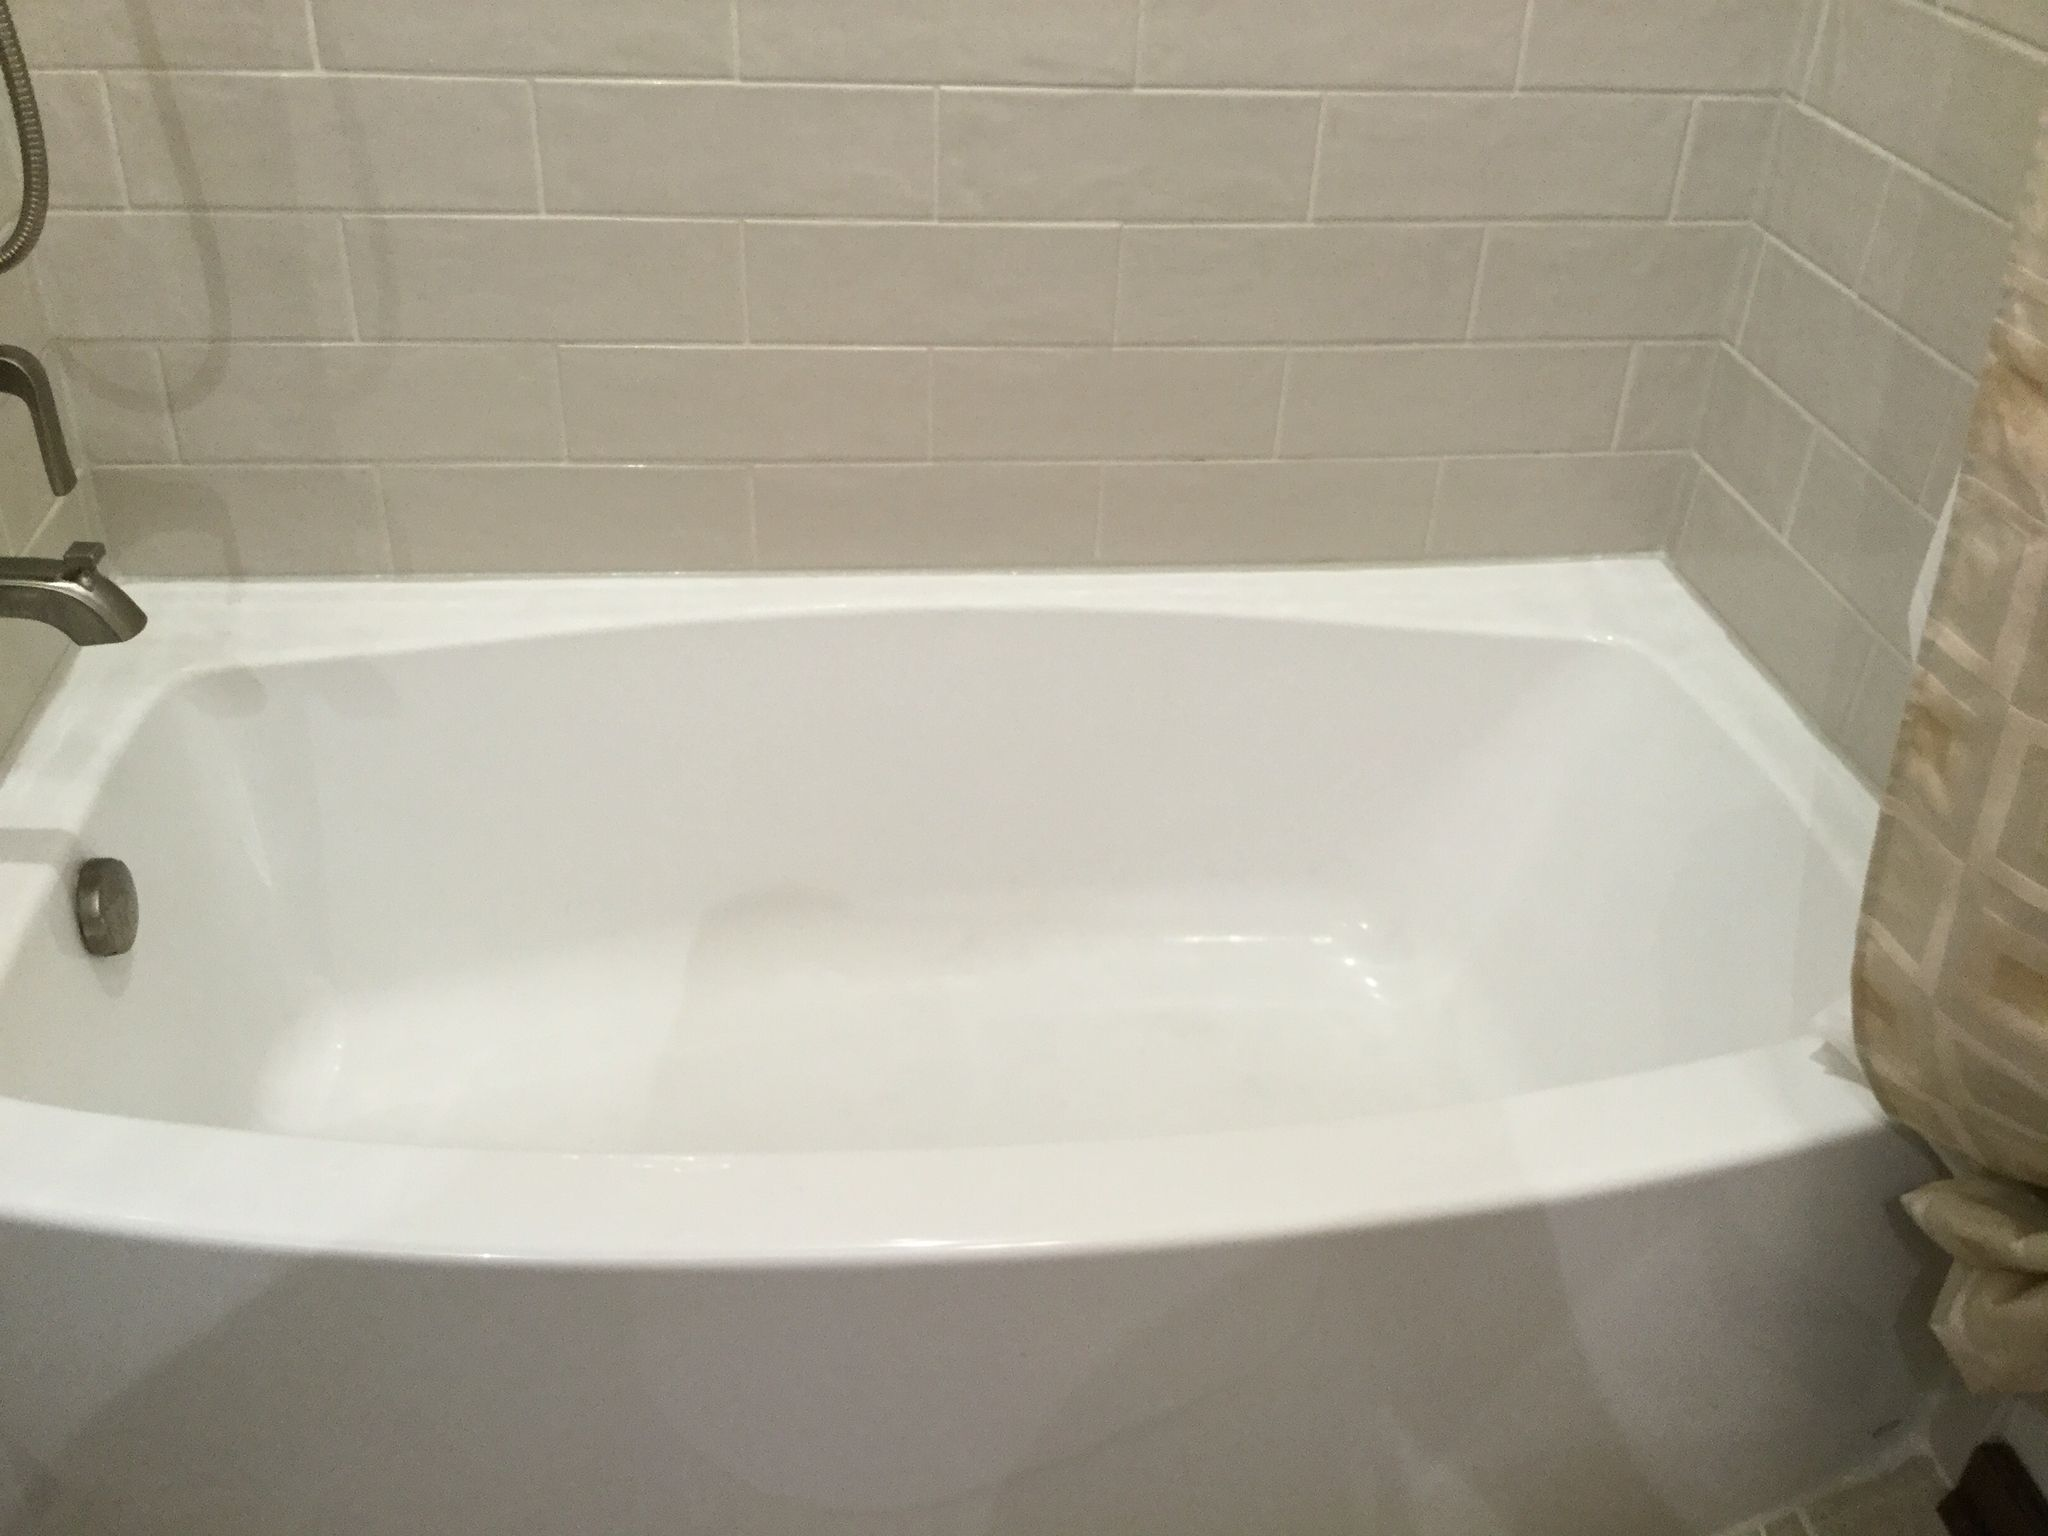 Kohler Expanse Bathtub. Bathtub surround tile Marazzi Middleton ...